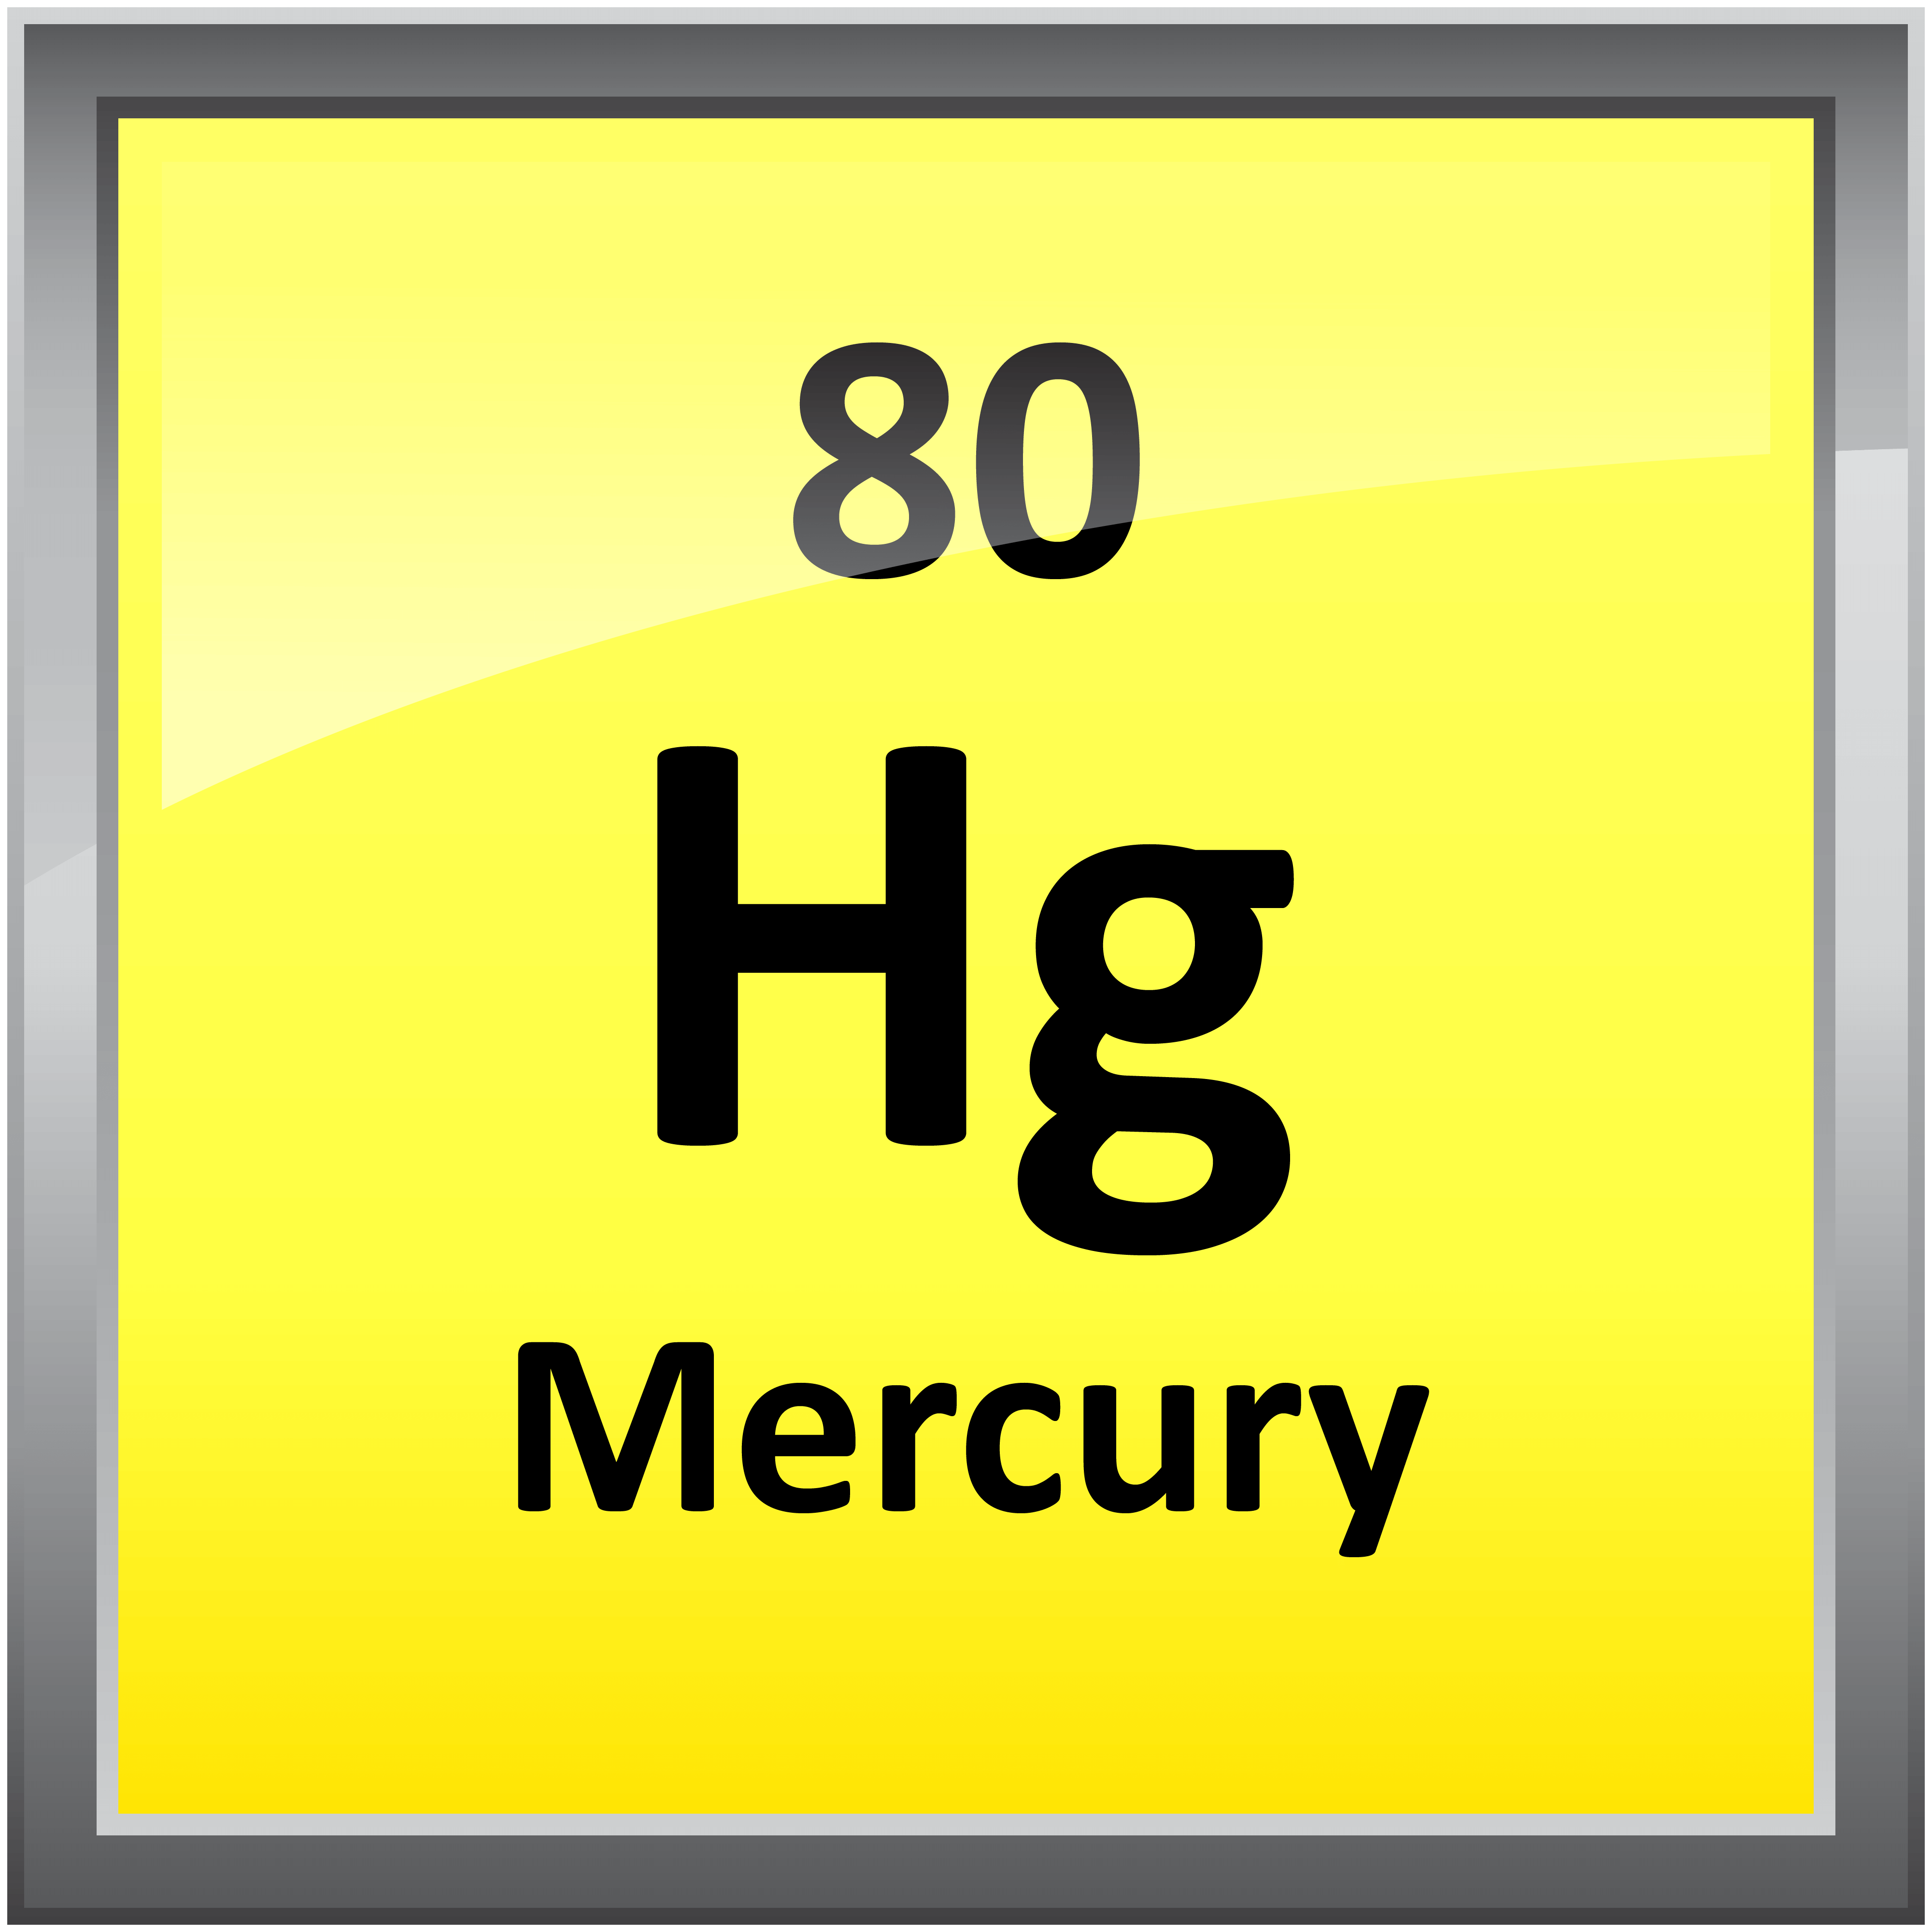 Mercury periodic table symbol thewealthbuilding mercury periodic table symbol gamestrikefo Images